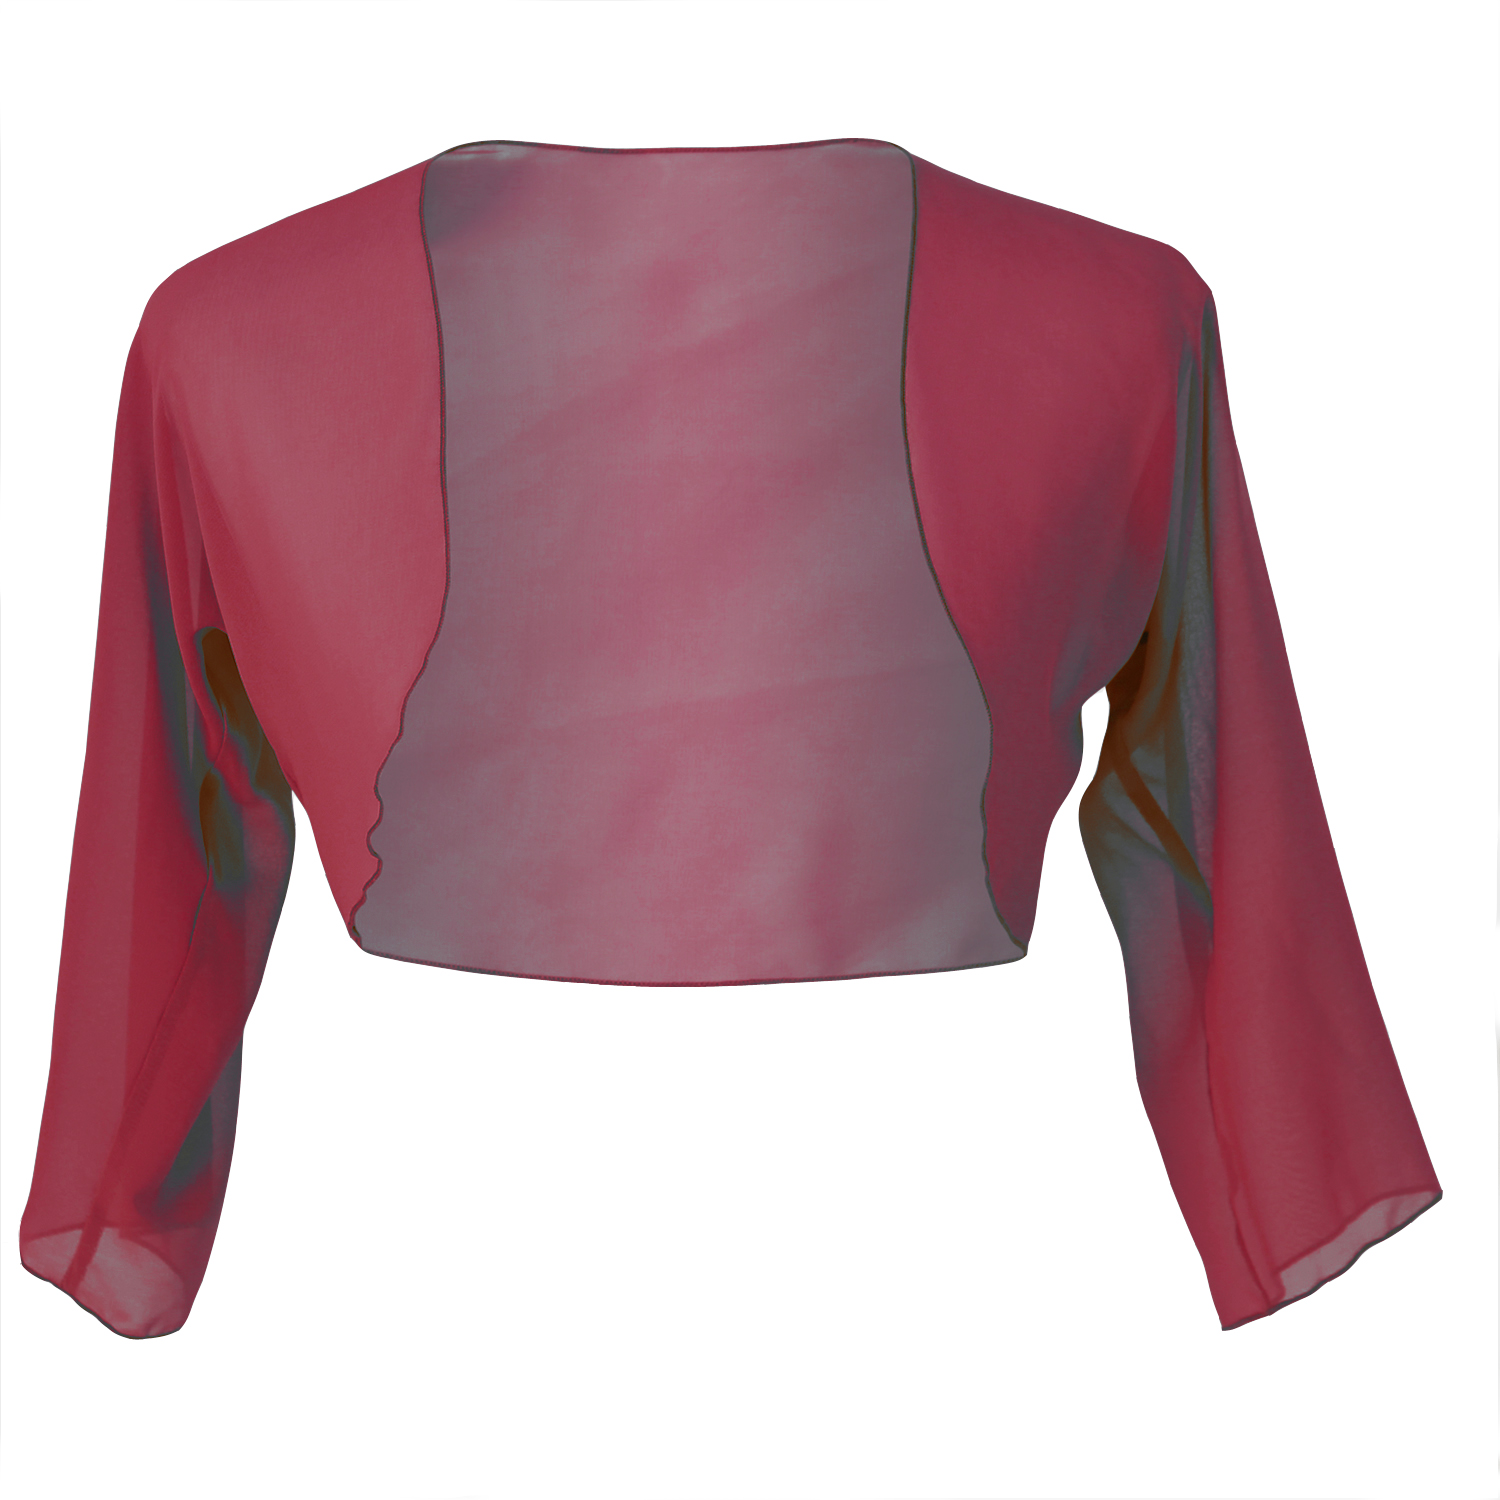 Faship Chiffon 3/4 Sleeve Bolero Shrug Cardigan Top